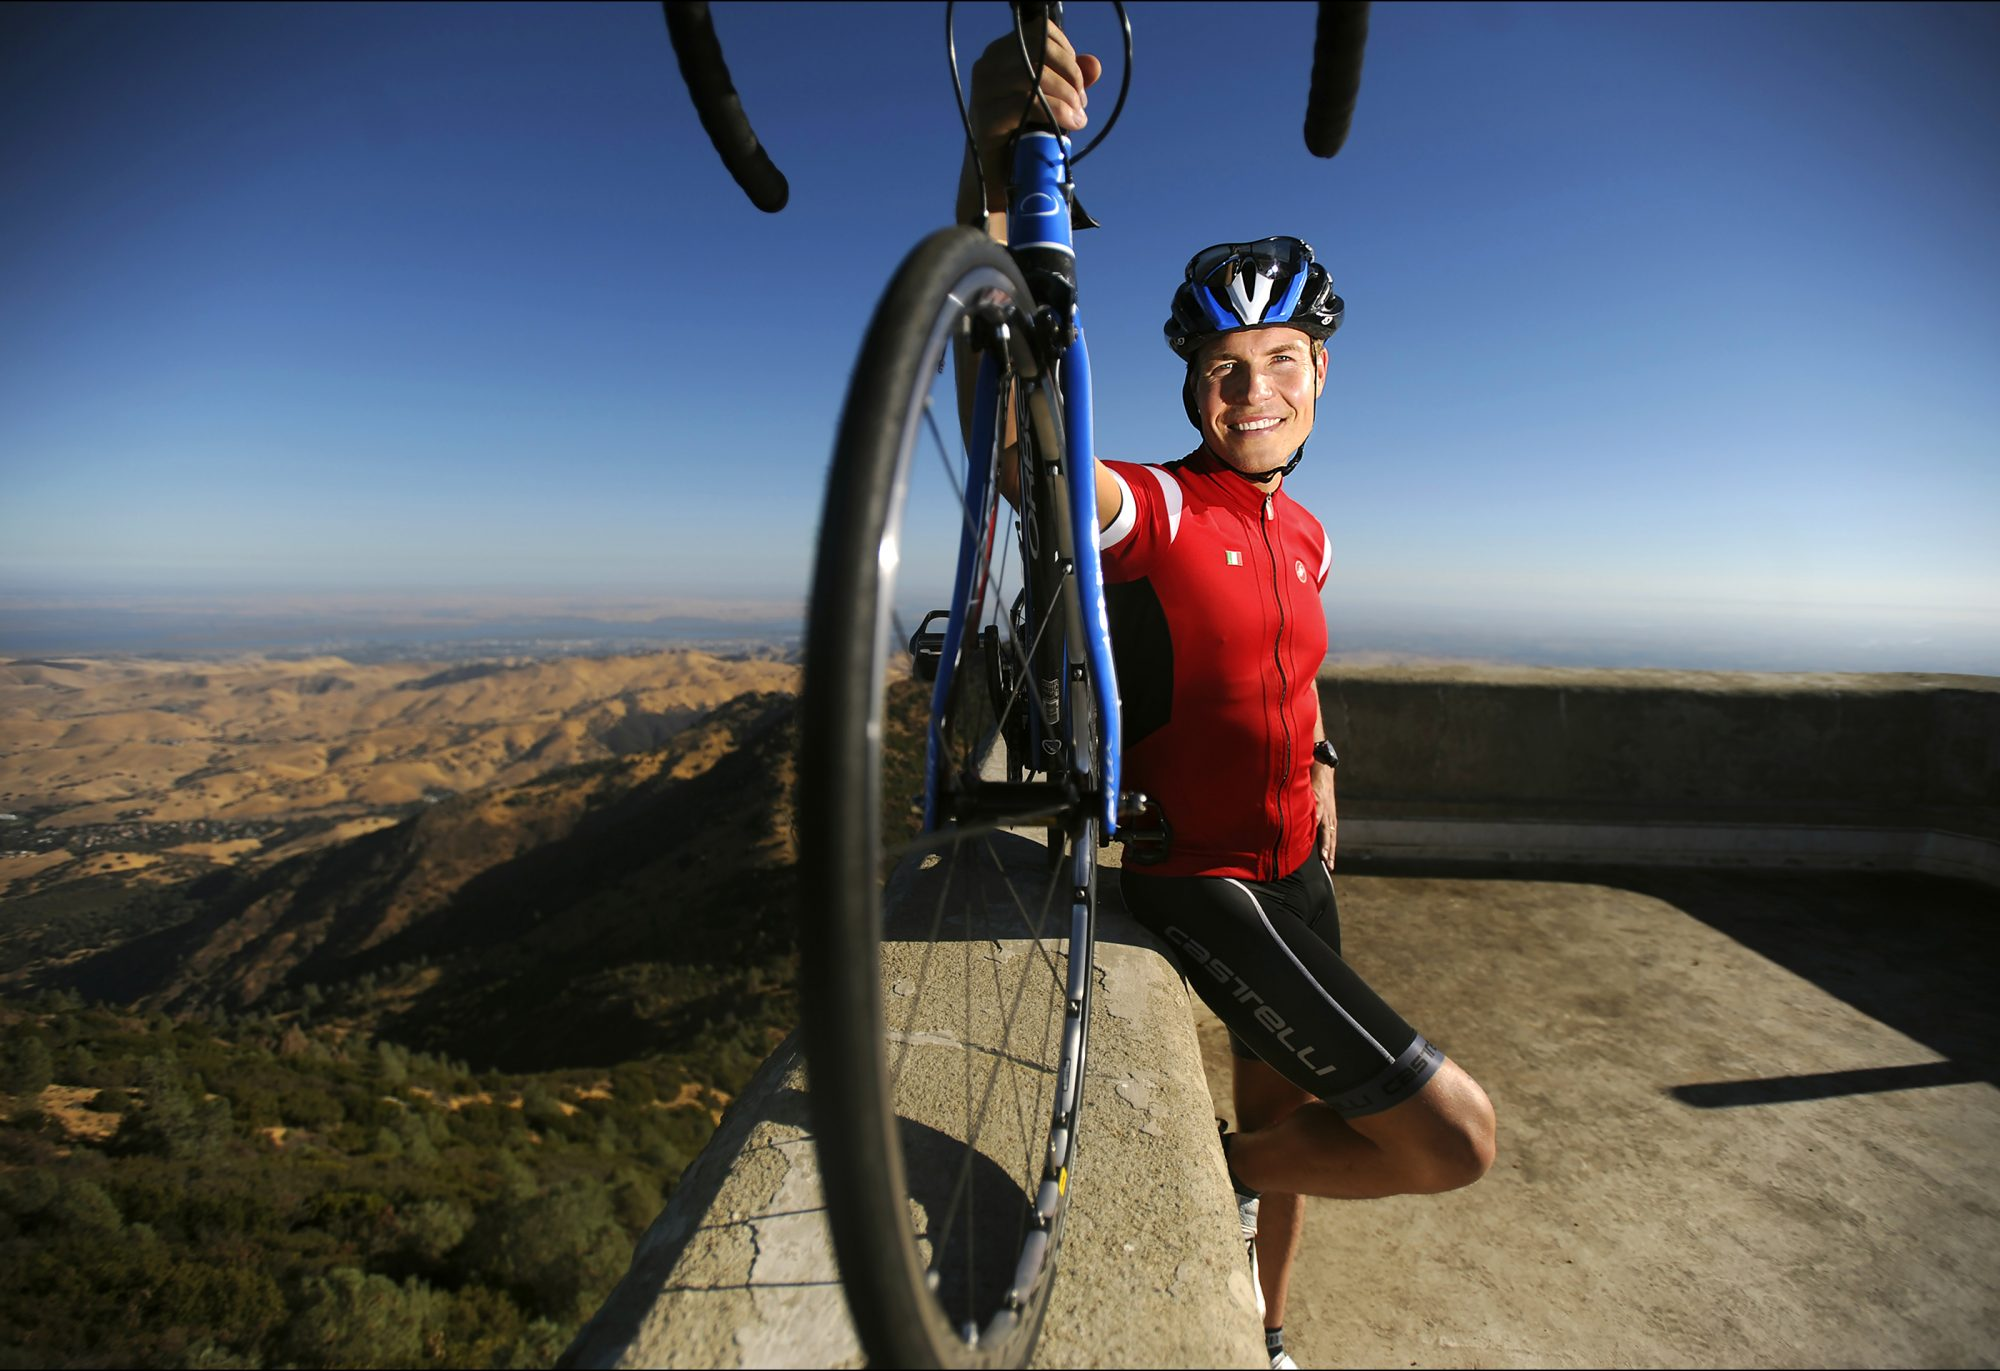 Trulia.com Co-Founder Sami Inkinen At The Mount Diablo Challenge Bicycle Race